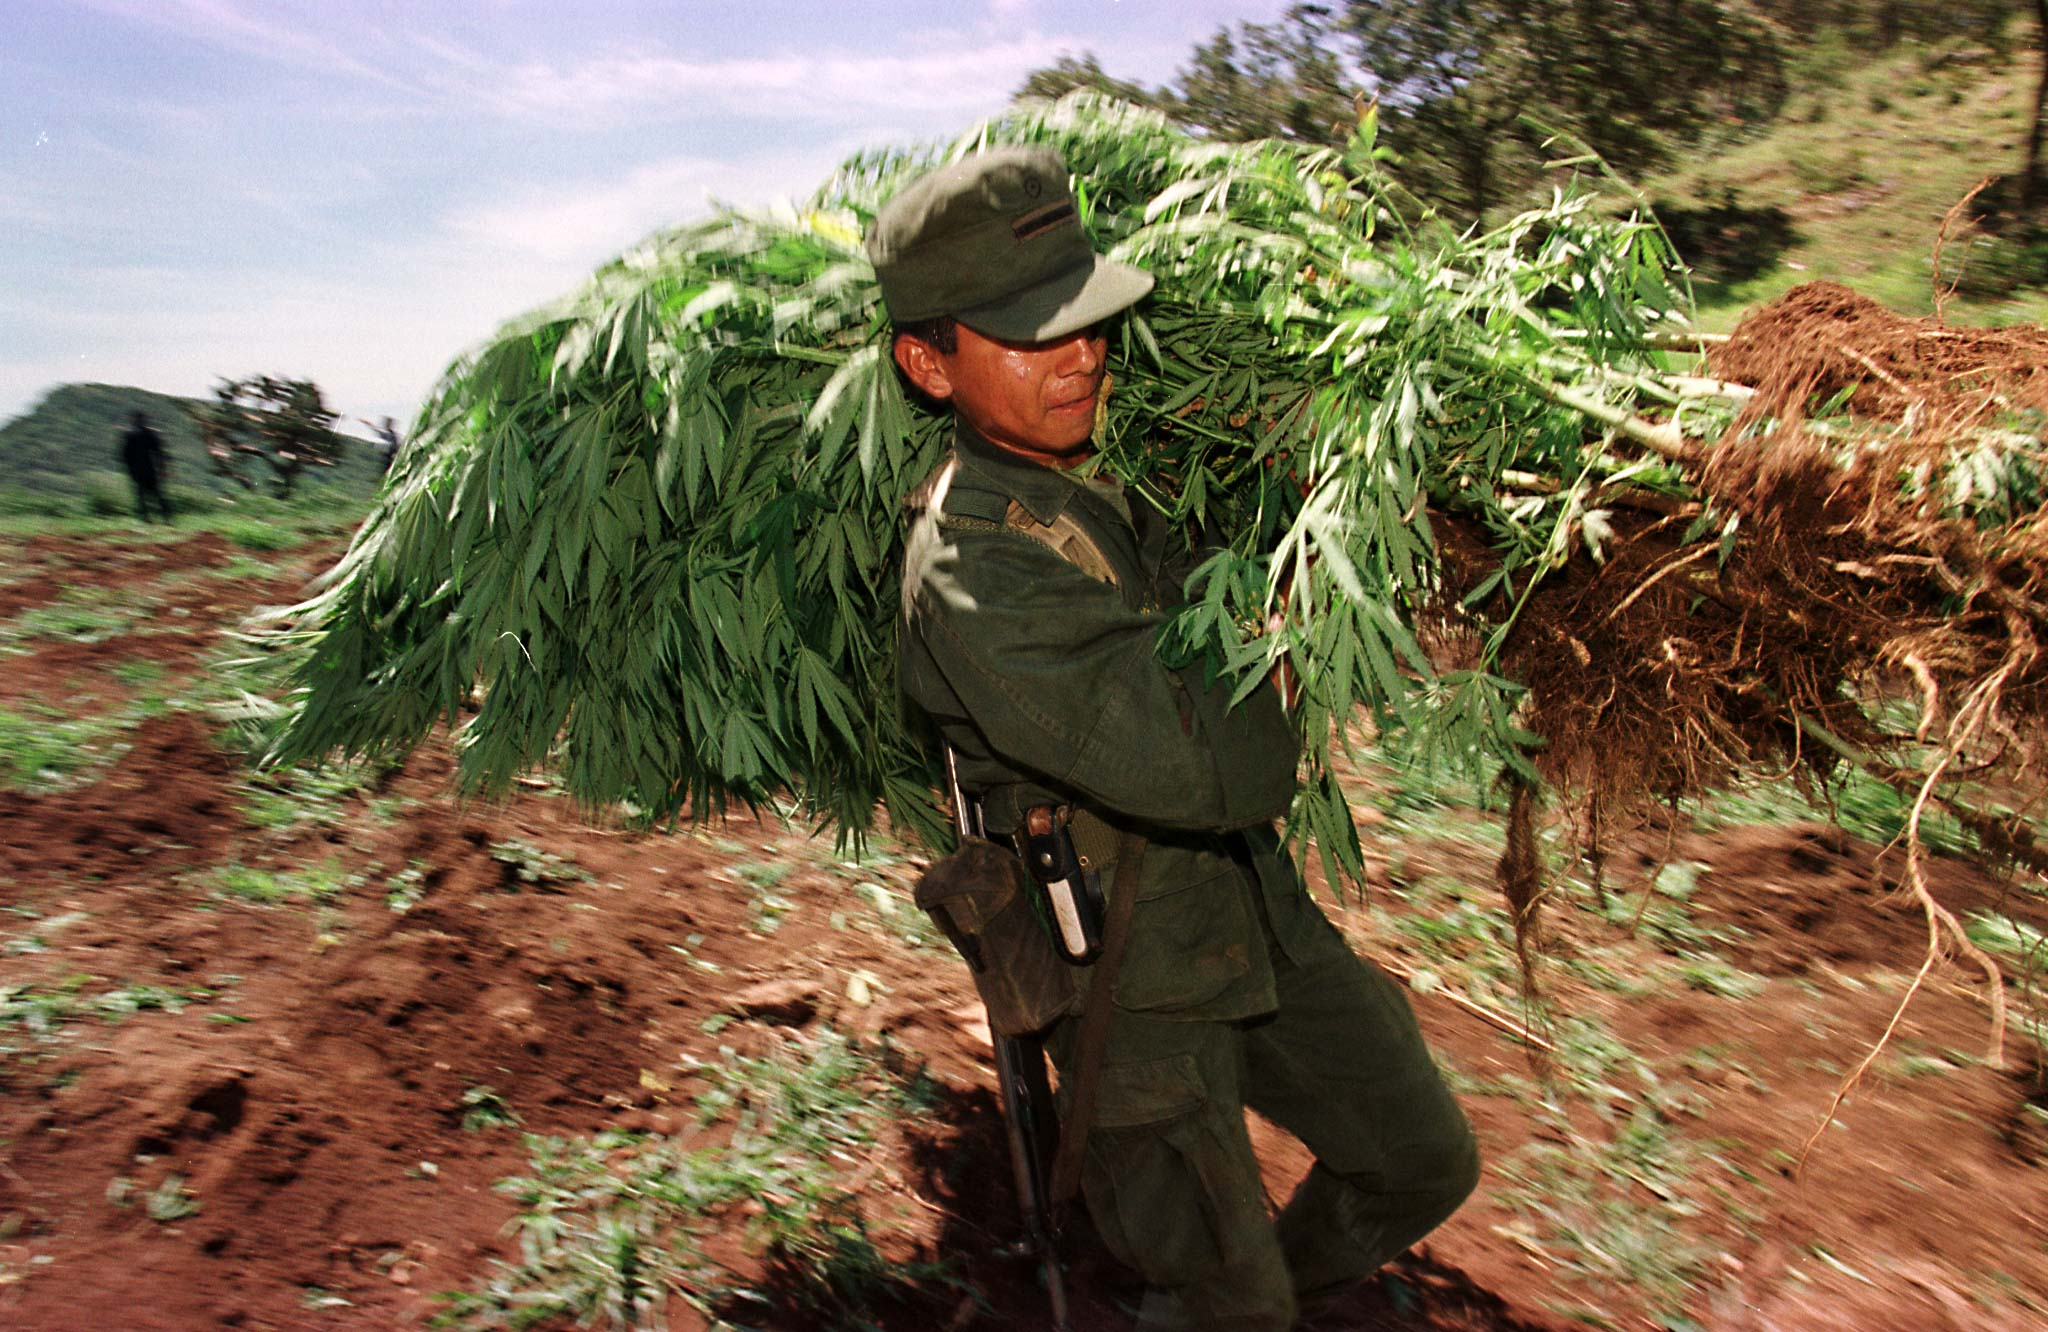 Mexico City Marijuana Legalization What Could New